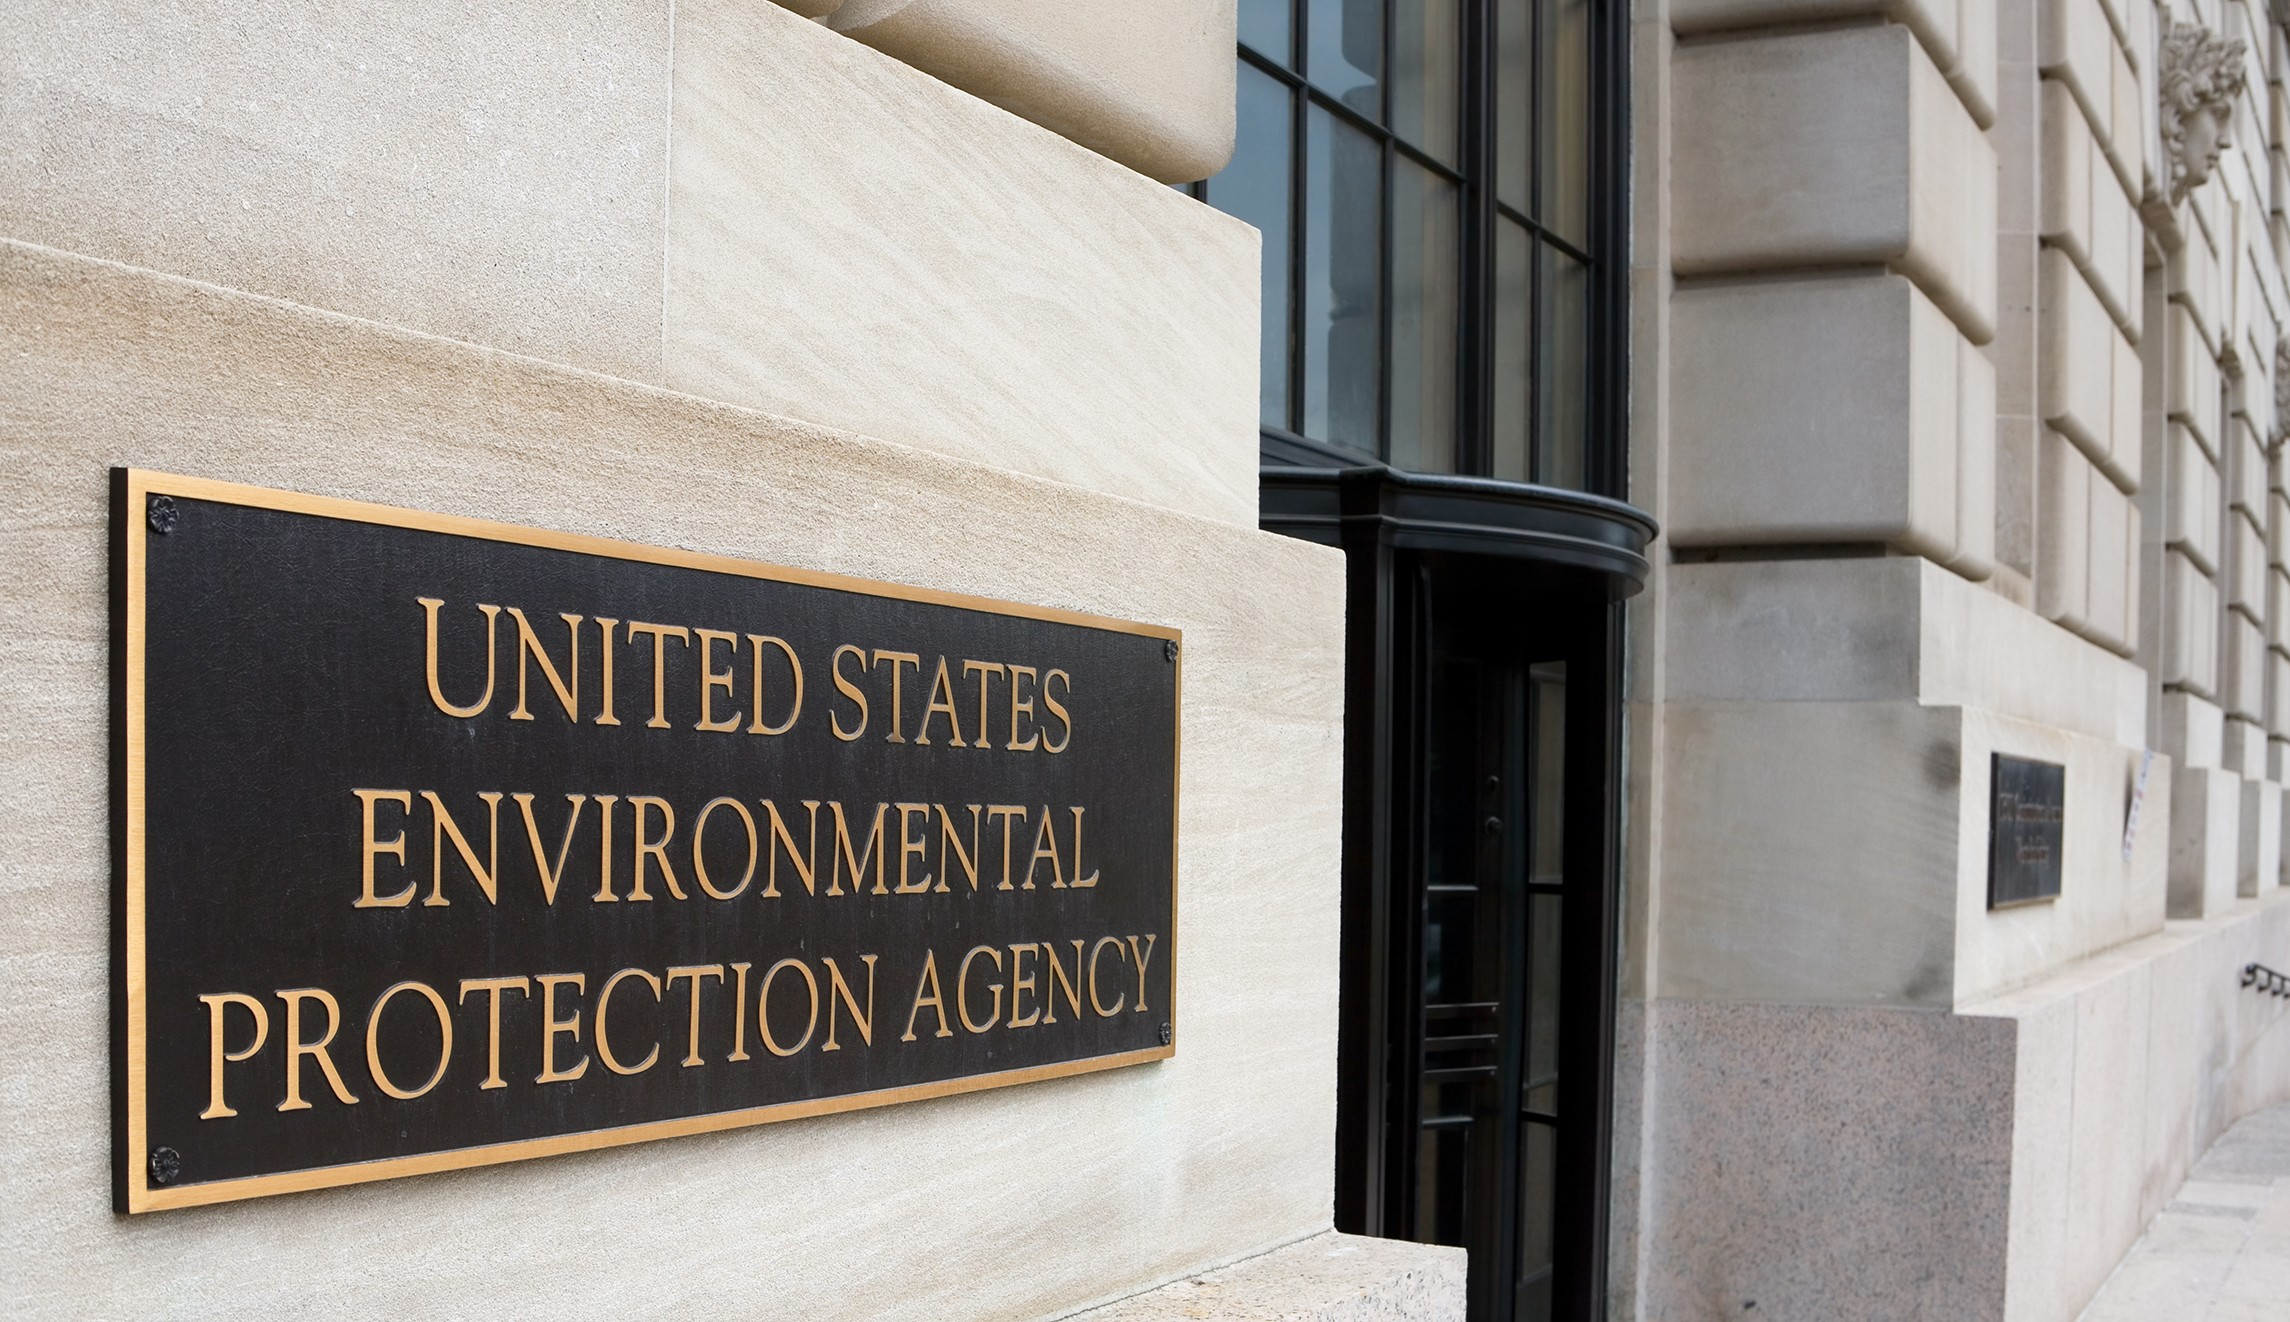 ACE Seeks Assurance EPA Administrator Wheeler is Complying with the Law on Any Final RFS Waiver Decisions